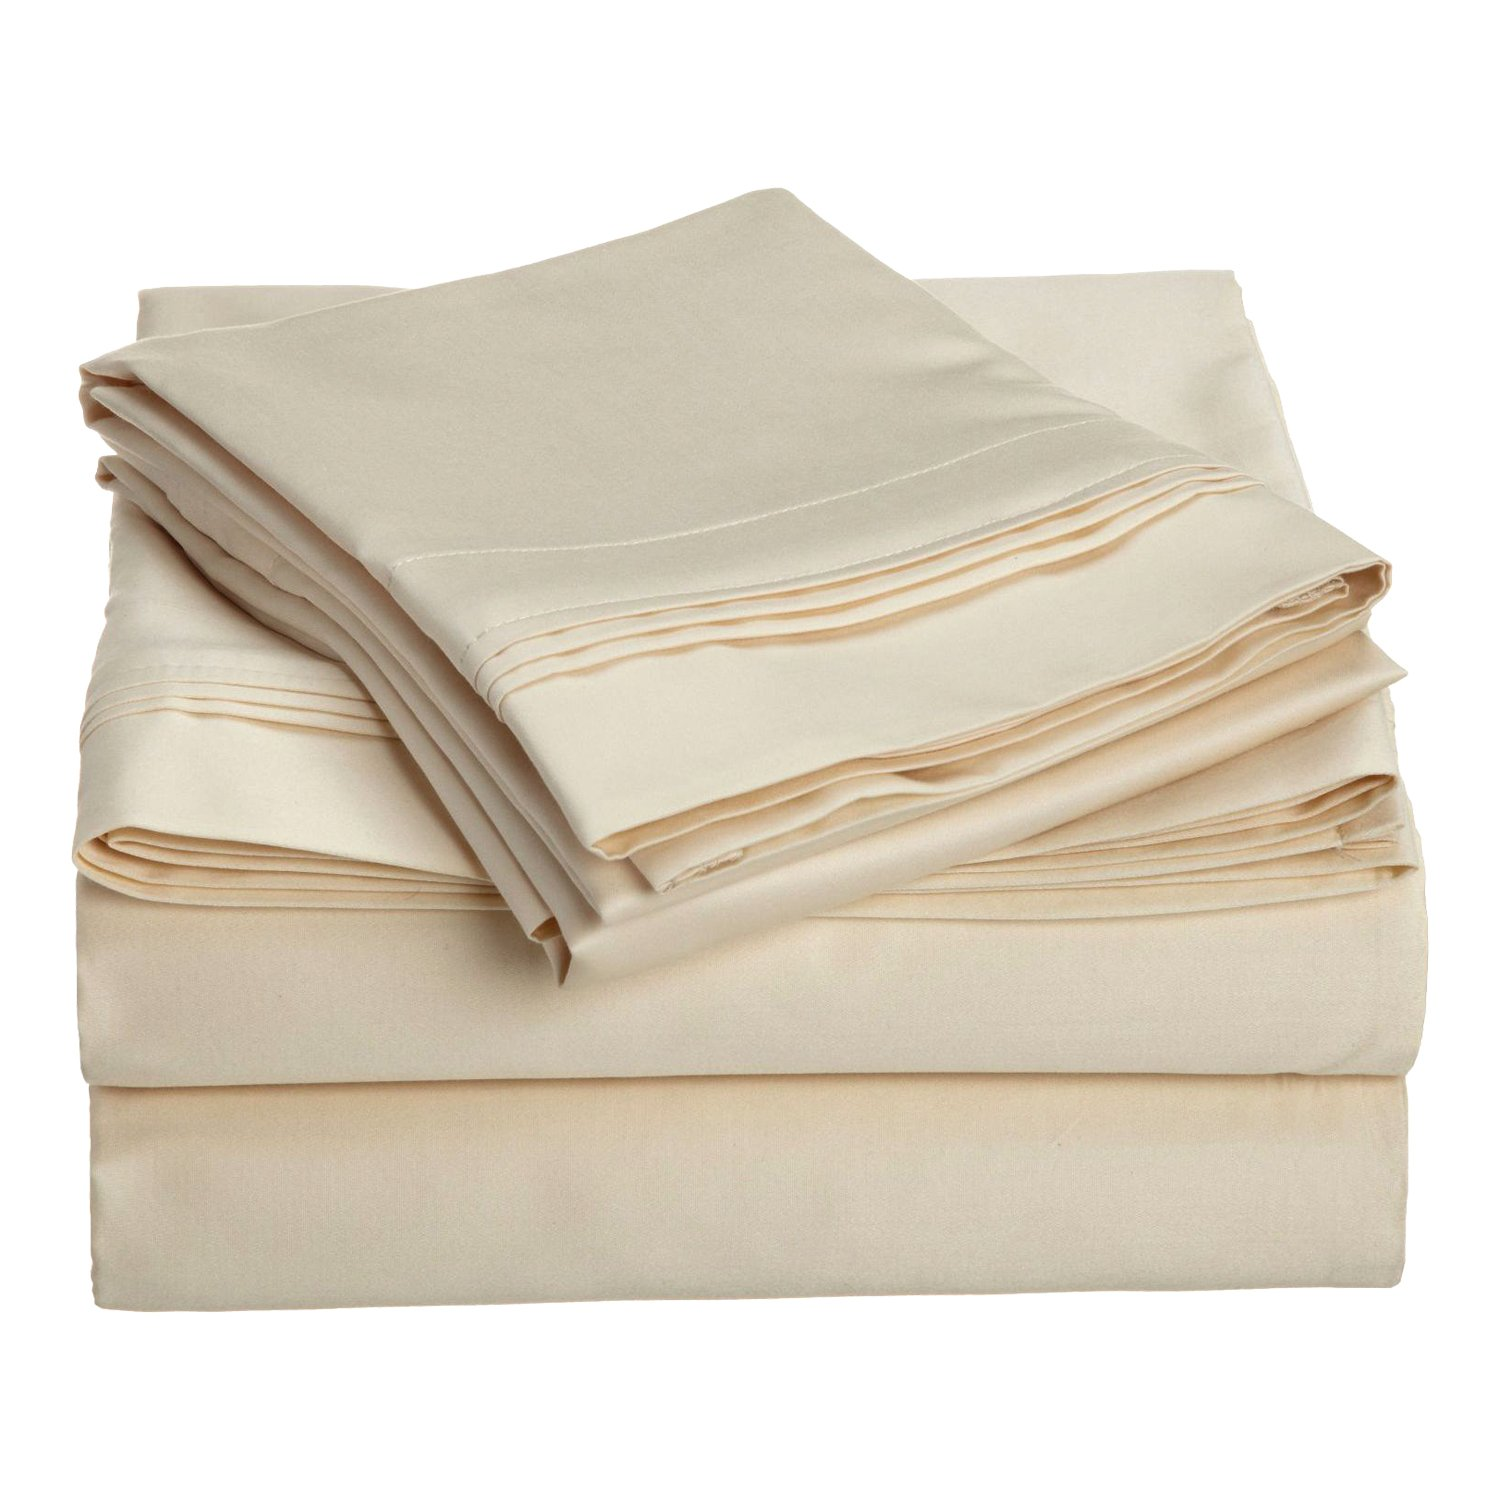 1500 Thread Count 100% Egyptian Cotton, Single Ply, Queen Bed Sheet Set, Solid, Ivory by Superior